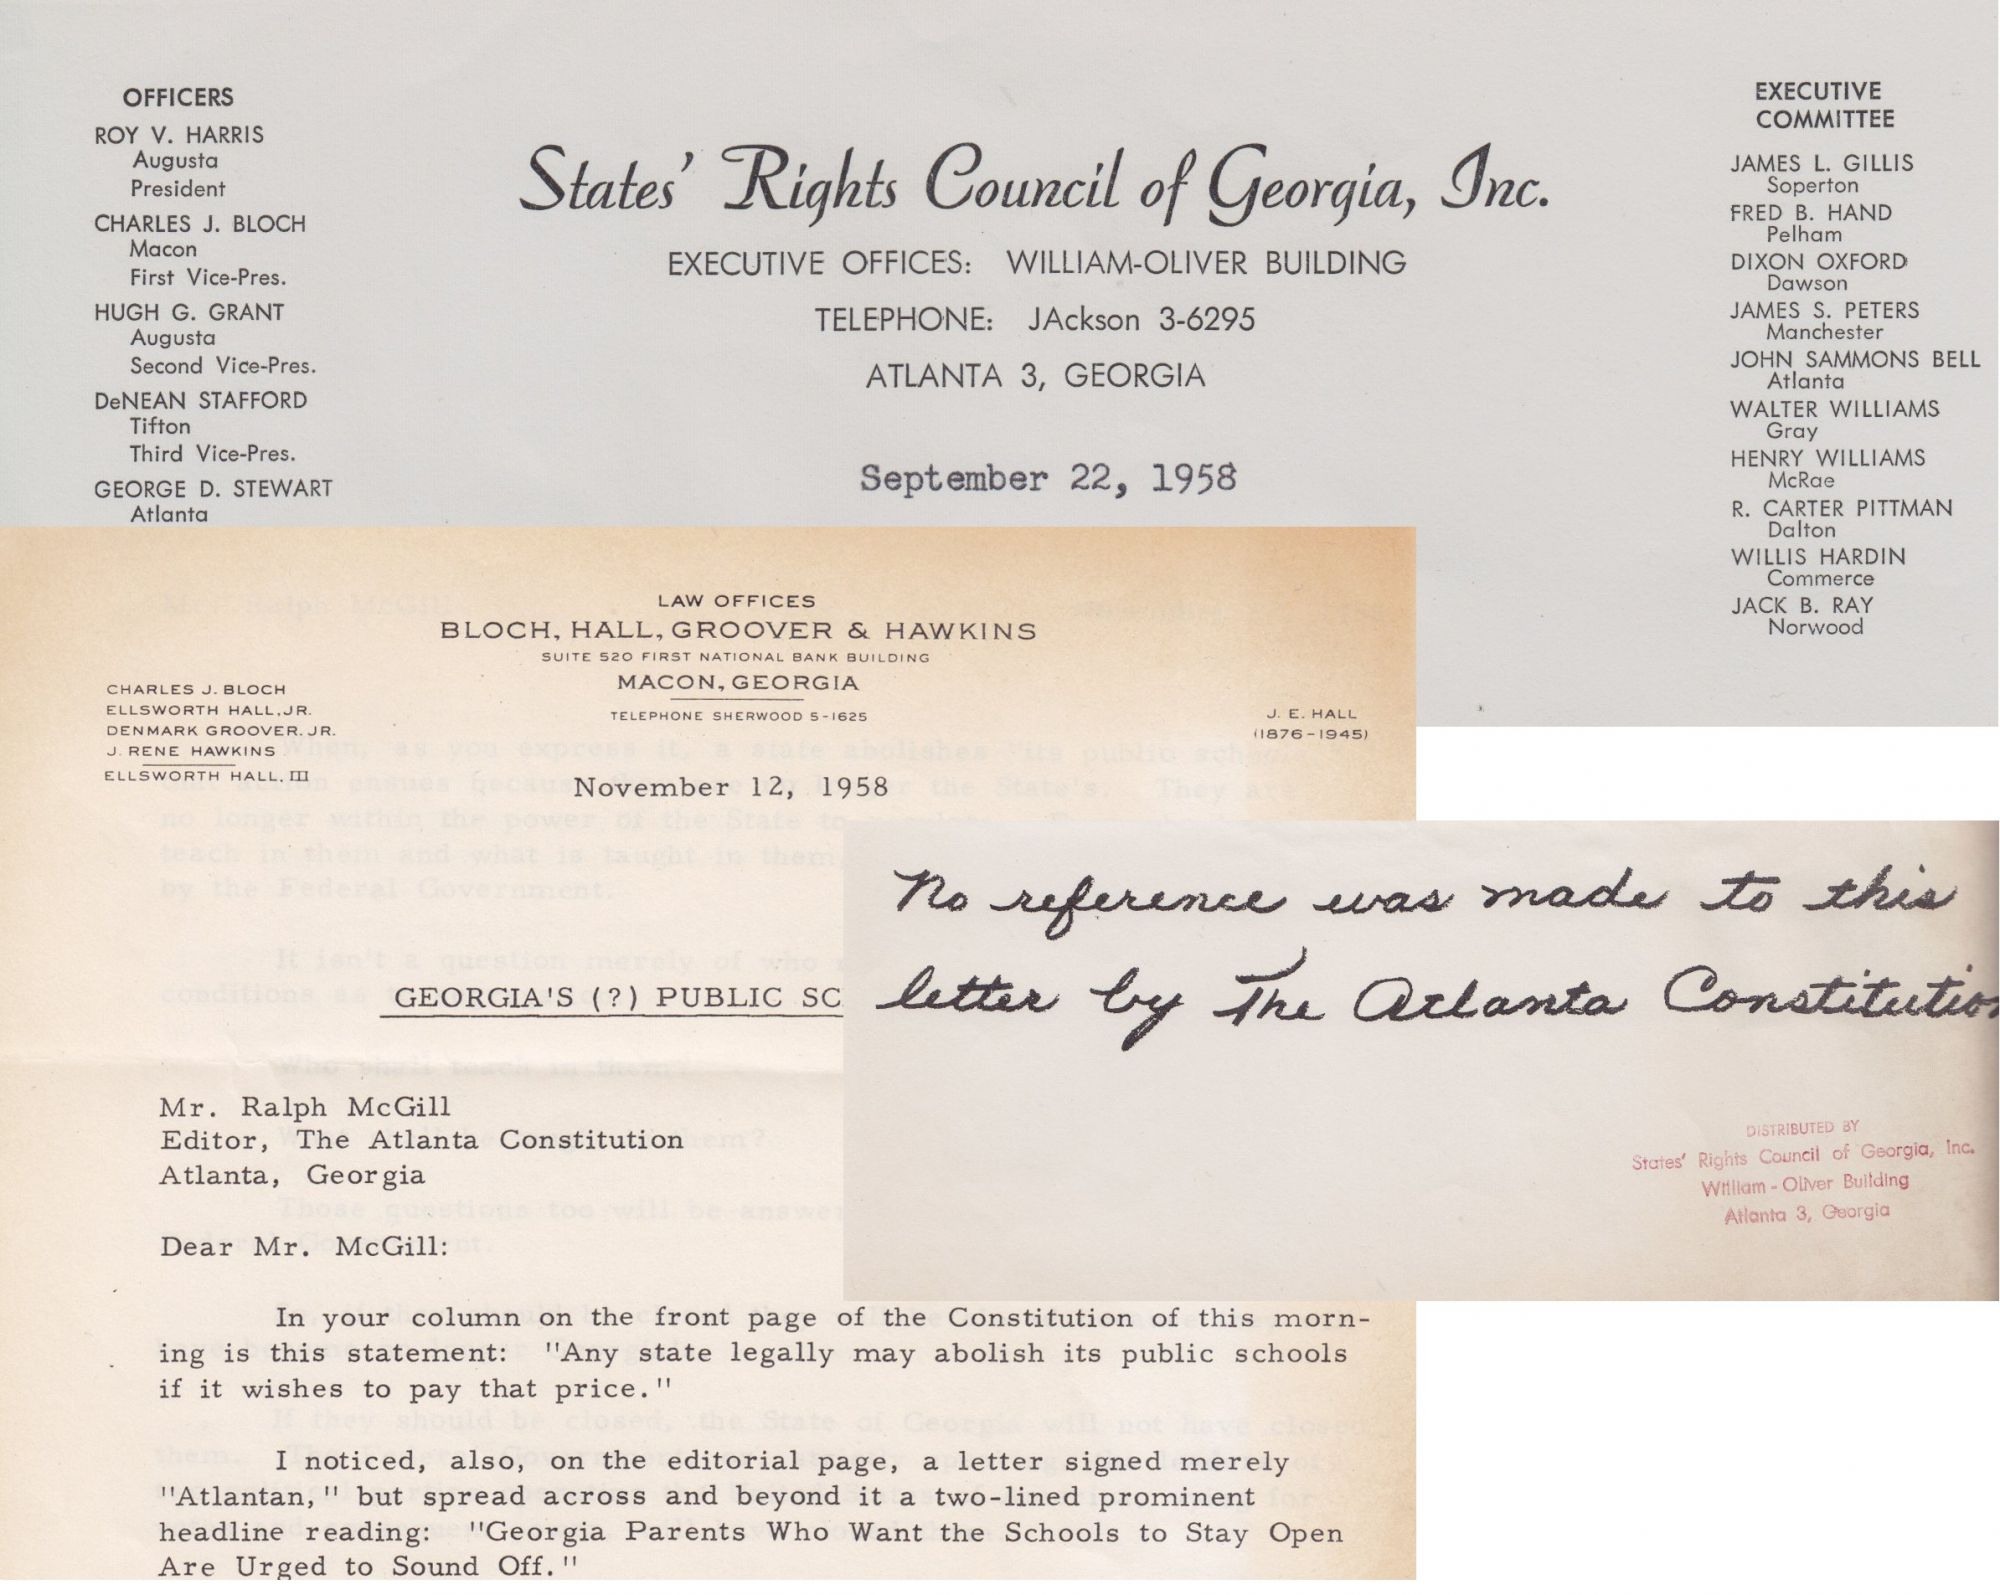 Catalog 2, Item #11 Ephemera from the States' Rights Council of Georgia